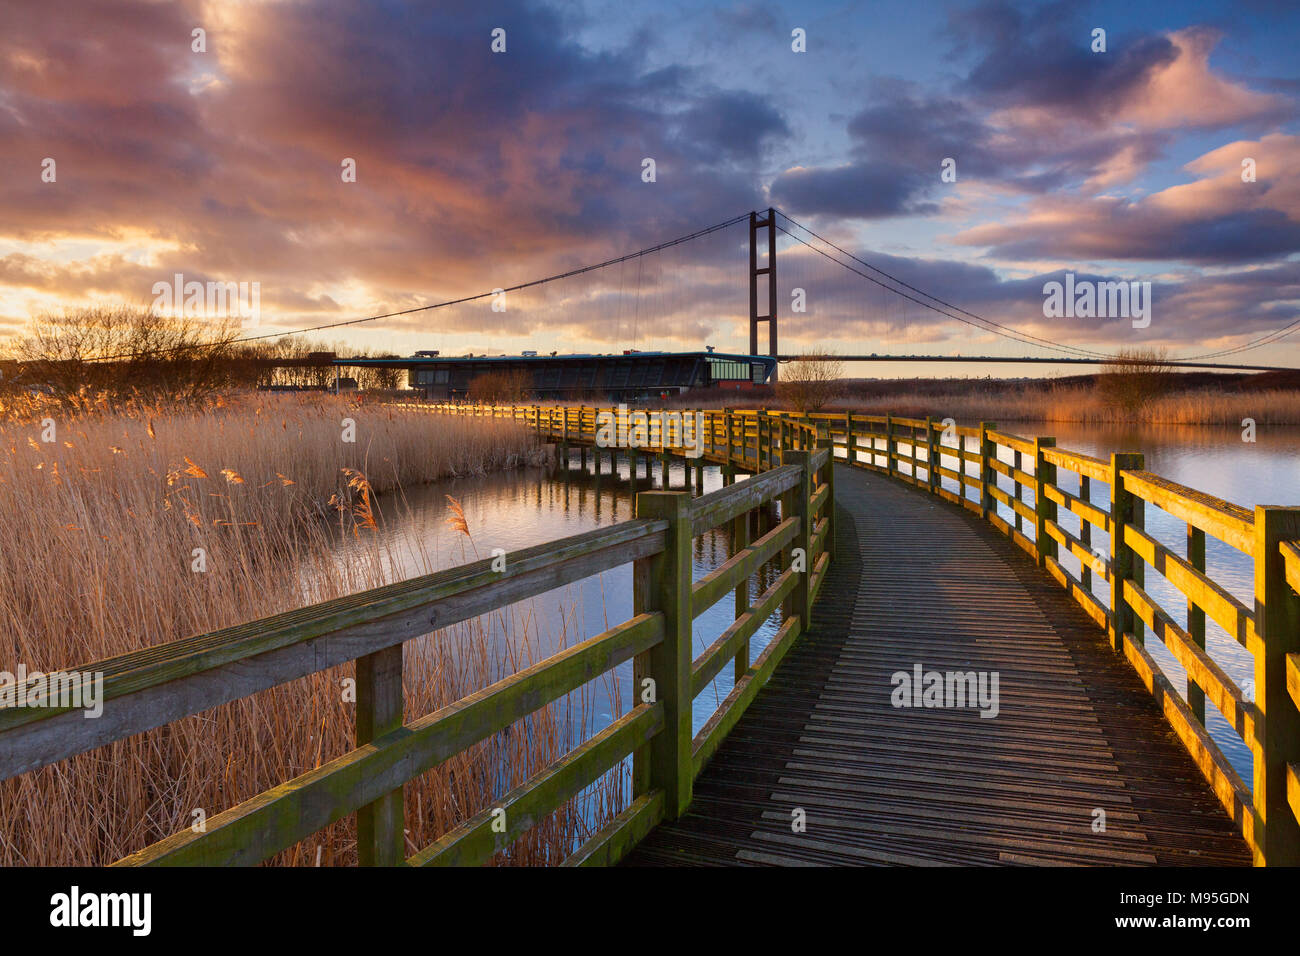 The Water's Edge Country Park in Barton-upon-Humber, North Lincolnshire, UK. The Humber Bridge towers over the park's Visitor Centre. - Stock Image